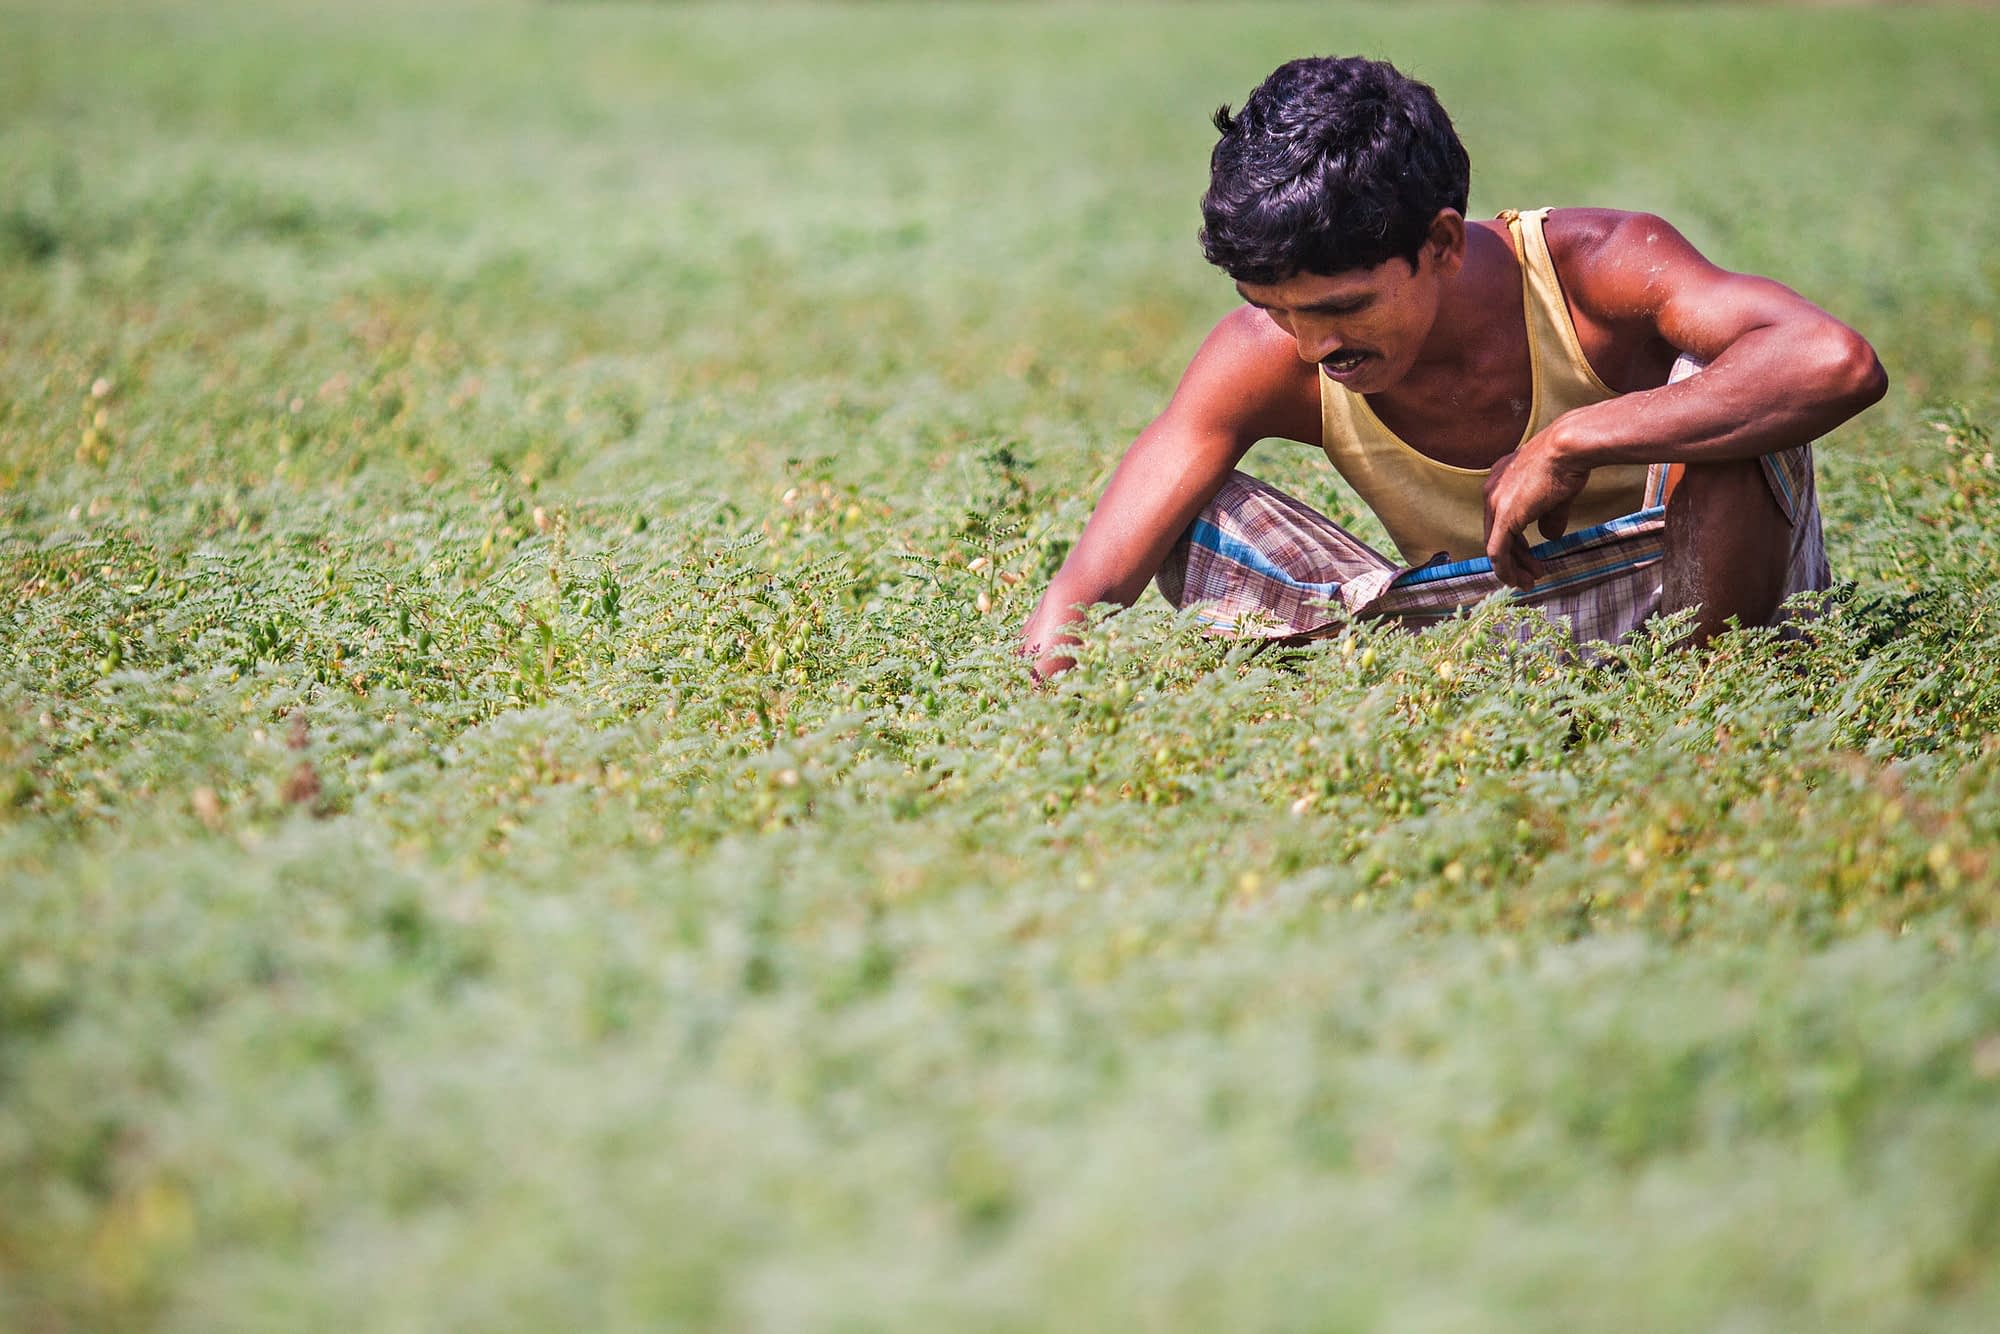 Hafiz Uddin, a farmer from Ulankhati, Tanpuna, Barisal, Bangladesh. He used seeder fertilizer drills to plant mung beans on one acre of land, which resulted in a better yield than planting manually. (Photo: Ranak Martin)